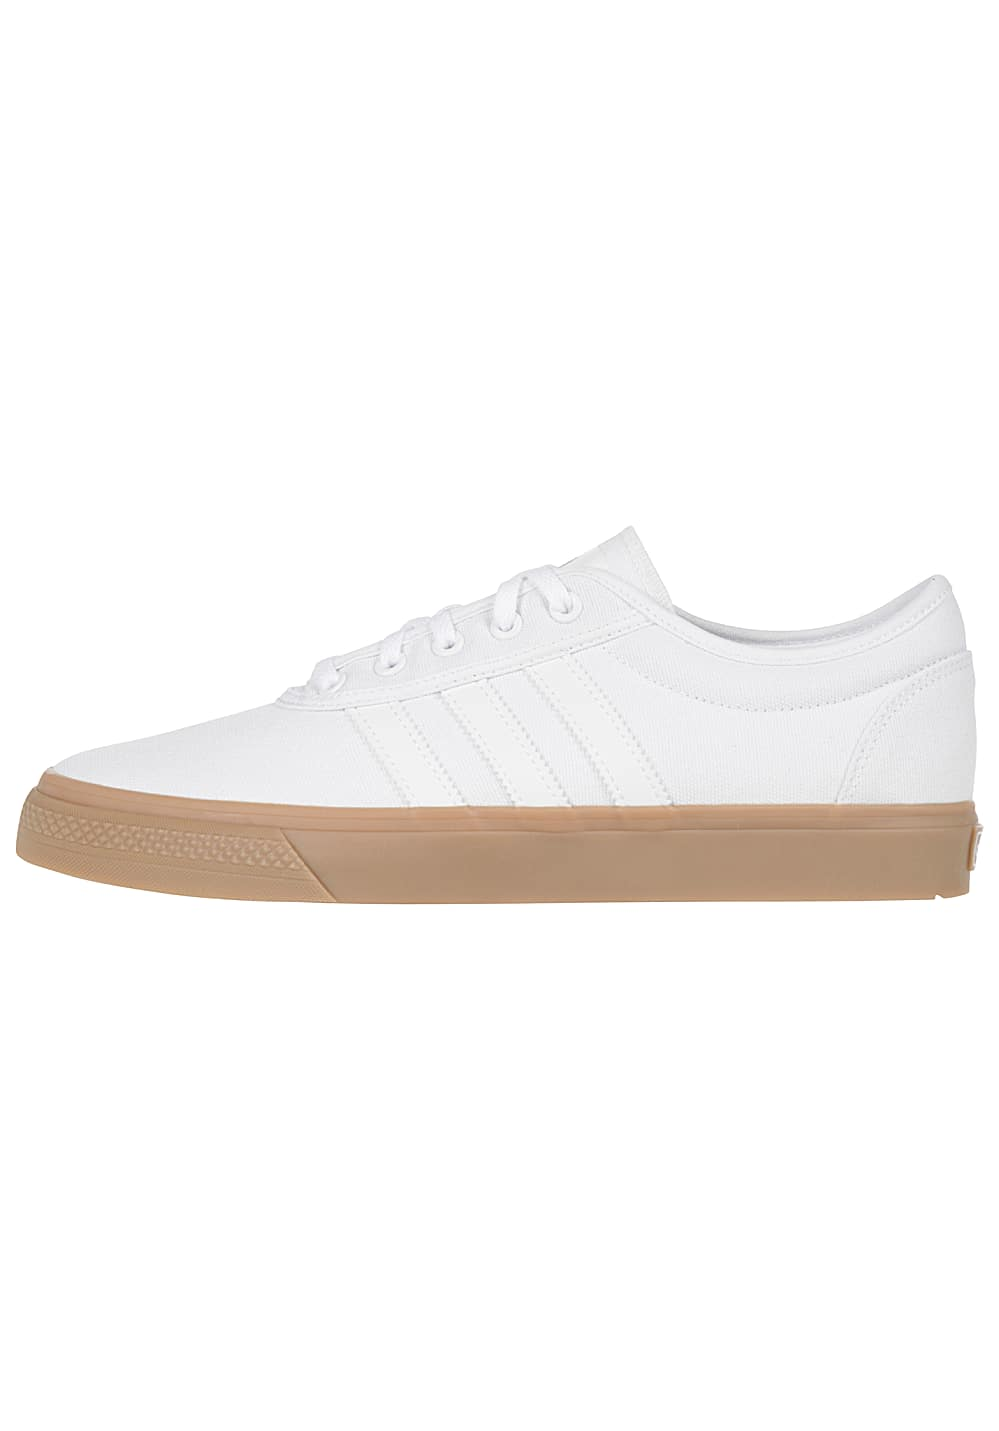 lowest price new york delicate colors Adidas Skateboarding Adi-Ease - Sneaker für Herren - Weiß ...